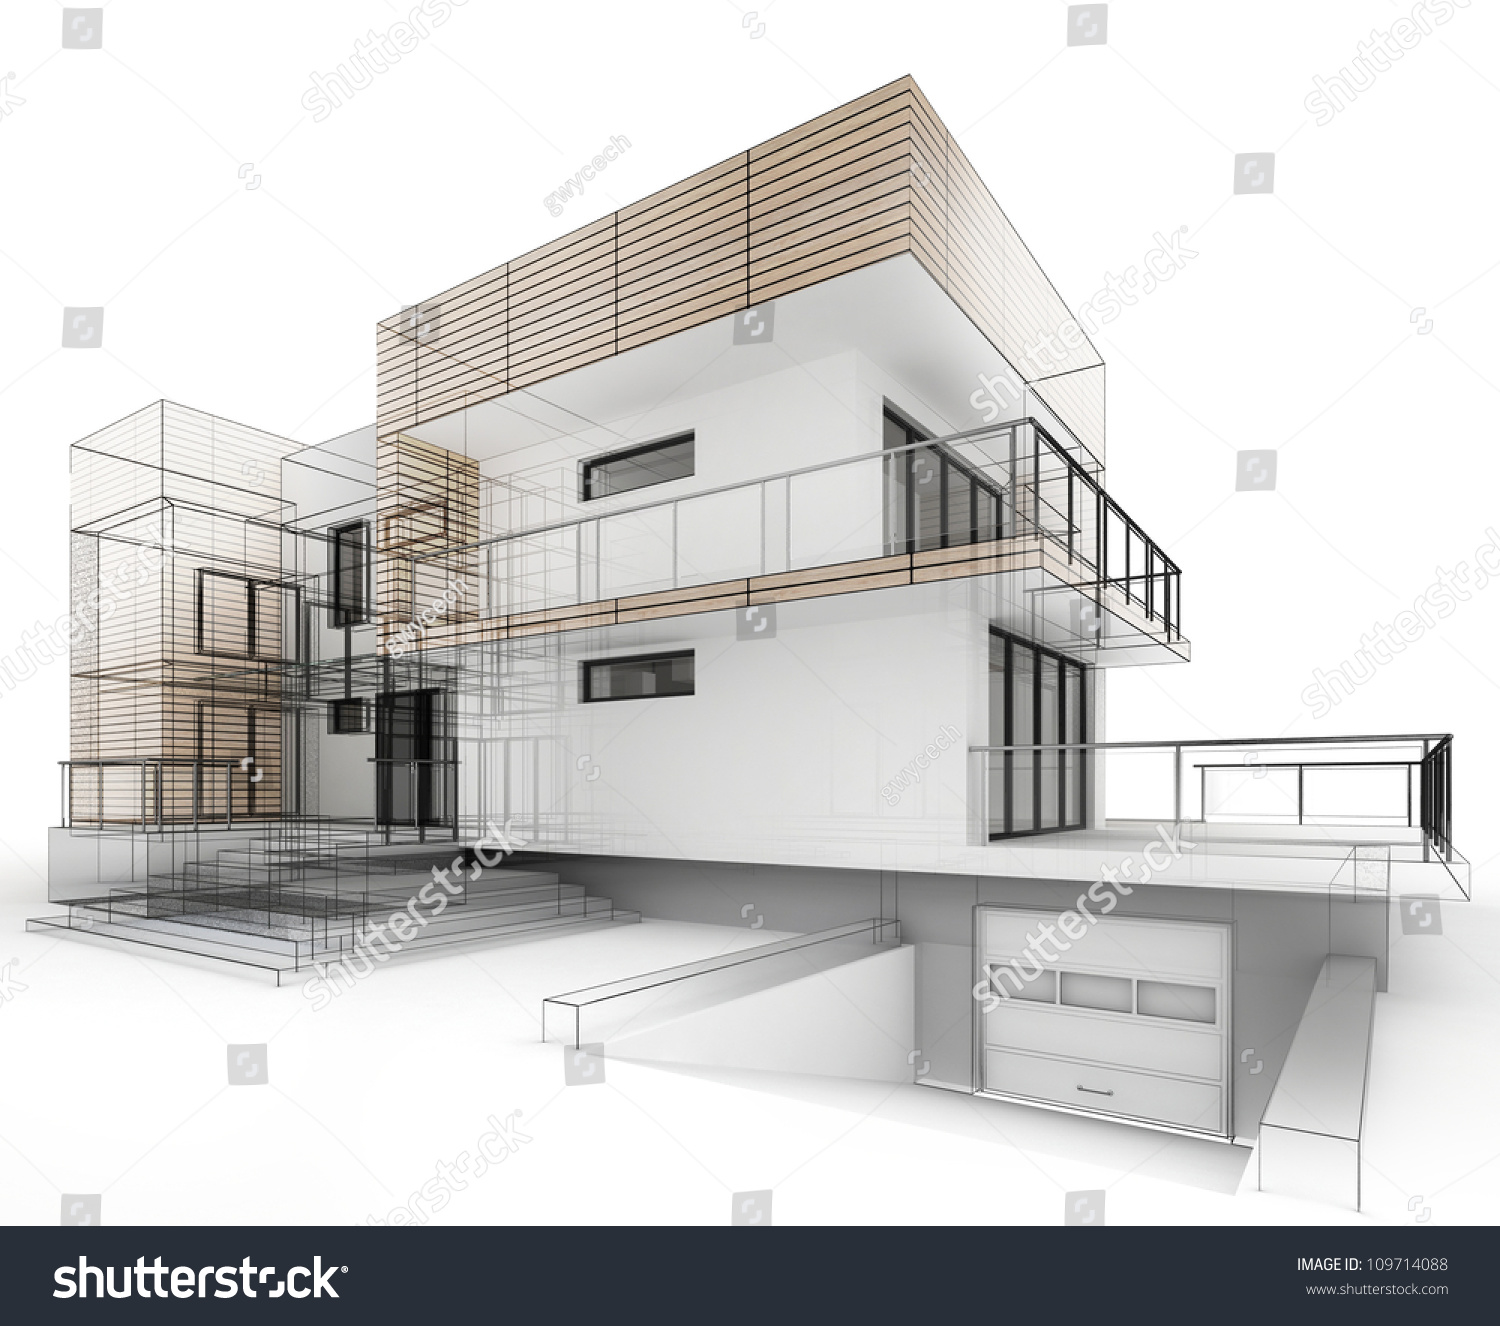 House design progress architecture drawing visualization for Architect drawing house plans